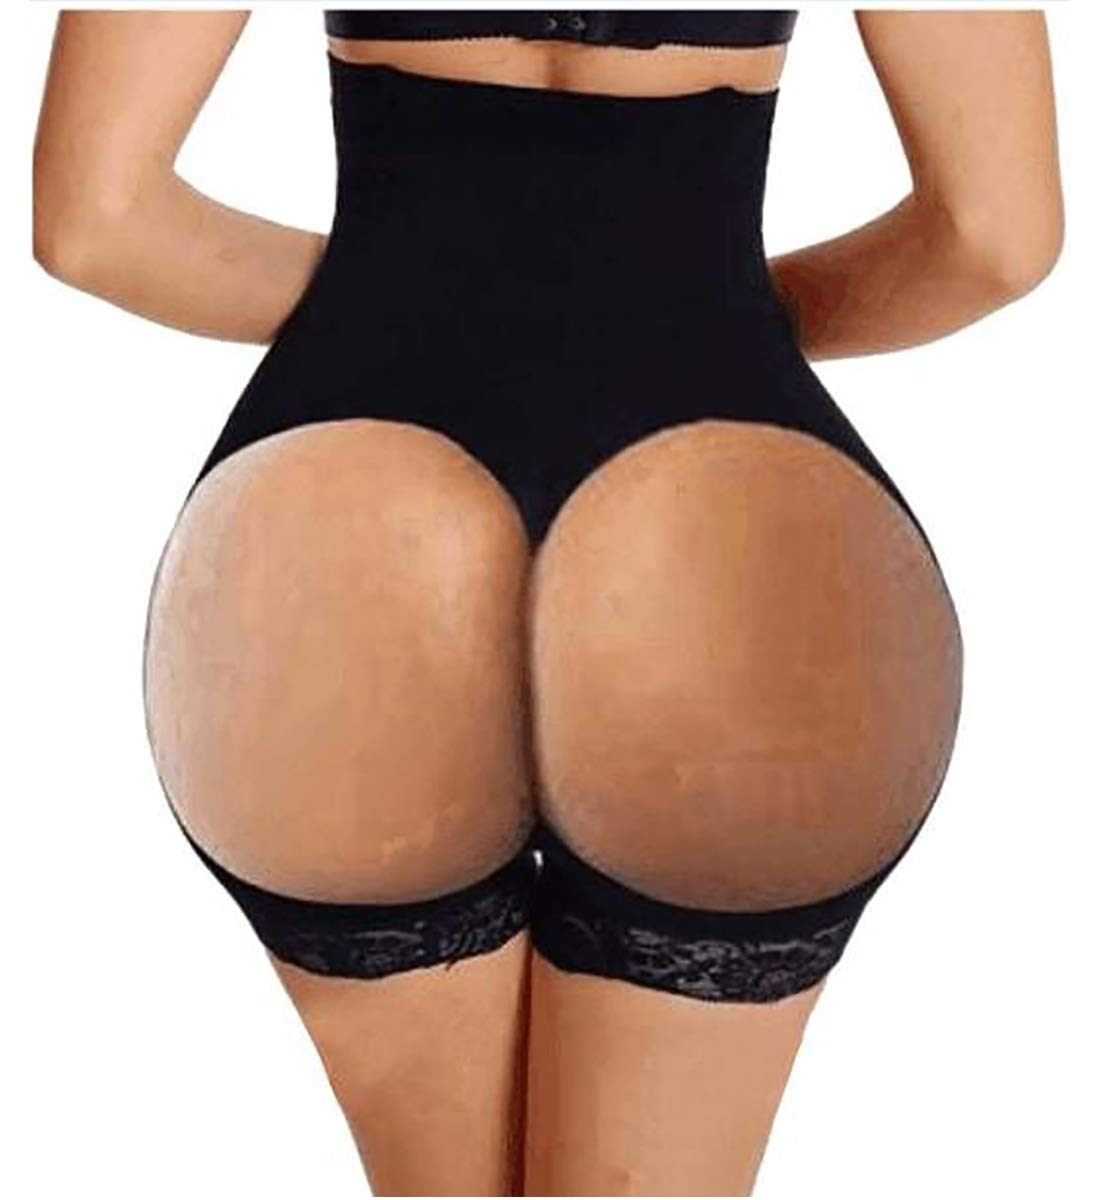 8666aadb44689 Hourglass Figure Butt Lifter Shaper Panties Tummy Control High Waisted  Boyshort (Black